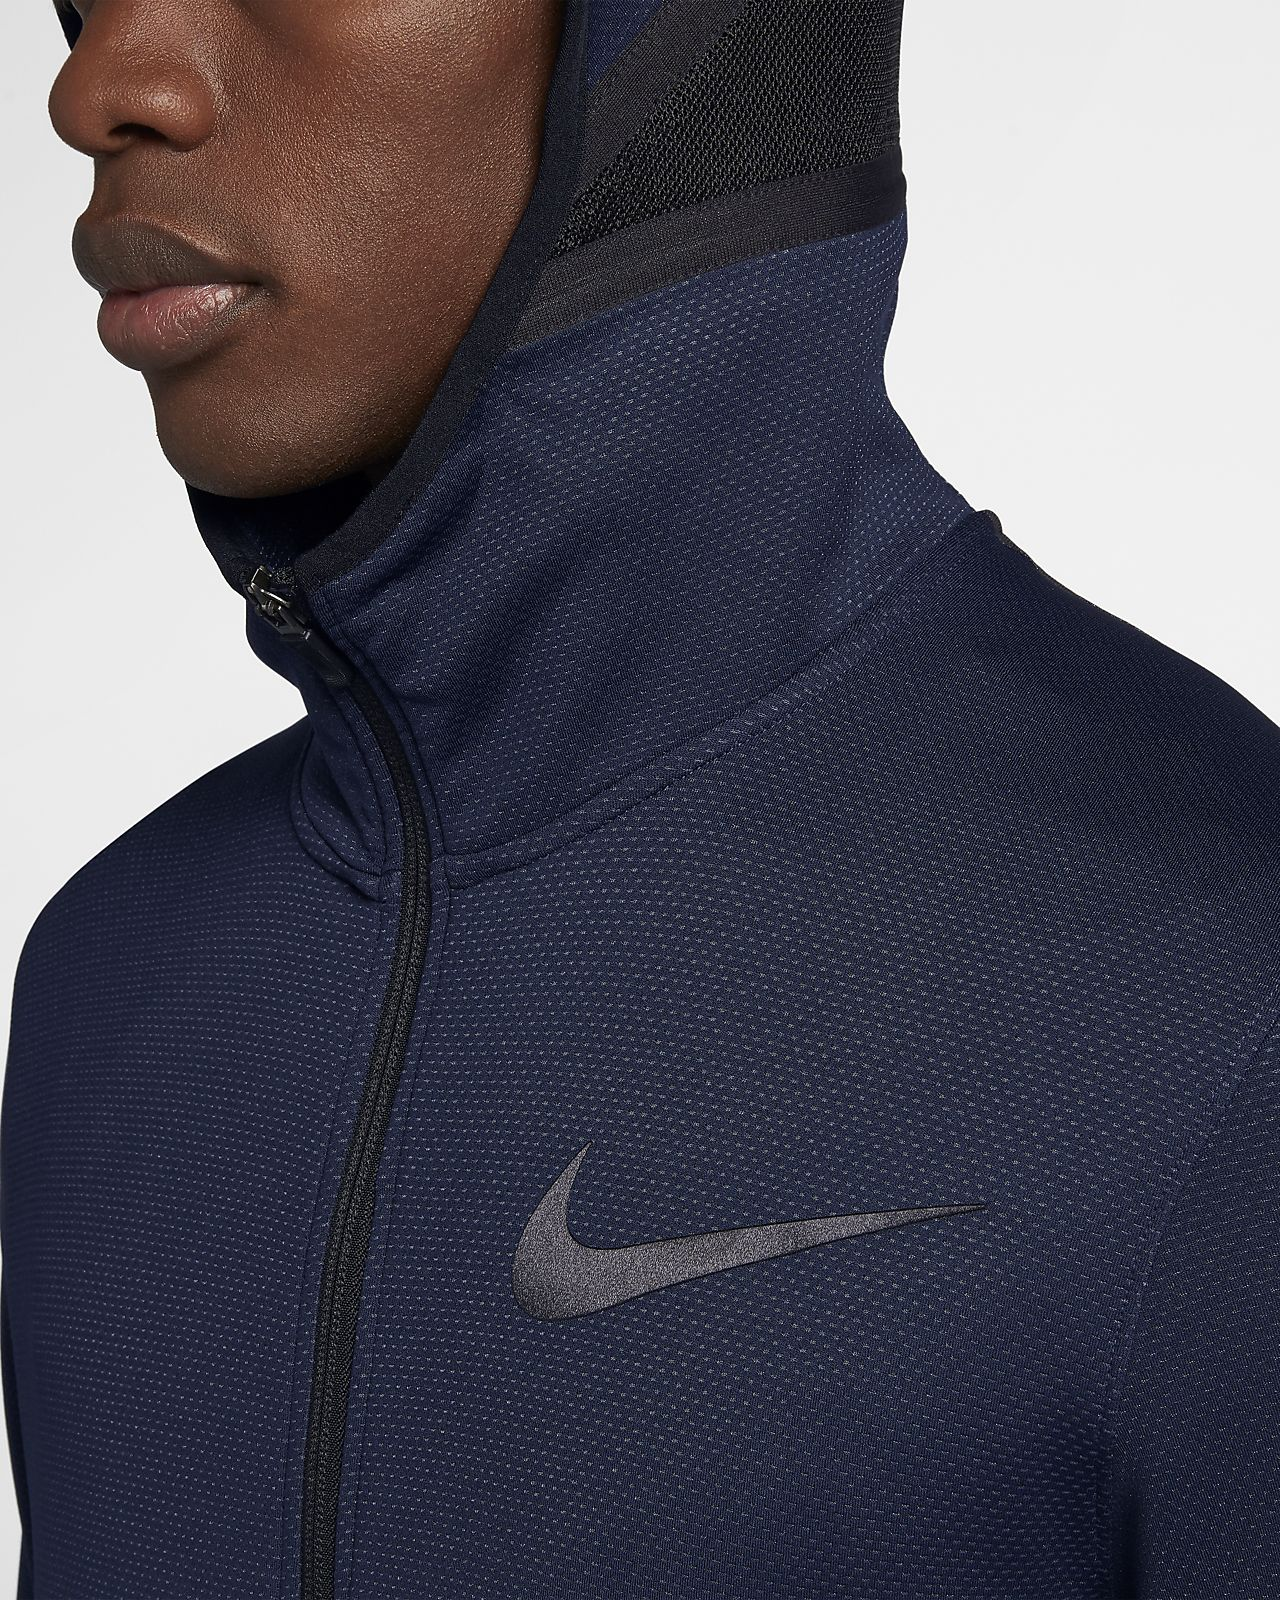 wholesale dealer e2f8a 0a329 ... Nike Therma Flex Showtime Men s Full-Zip Basketball Hoodie